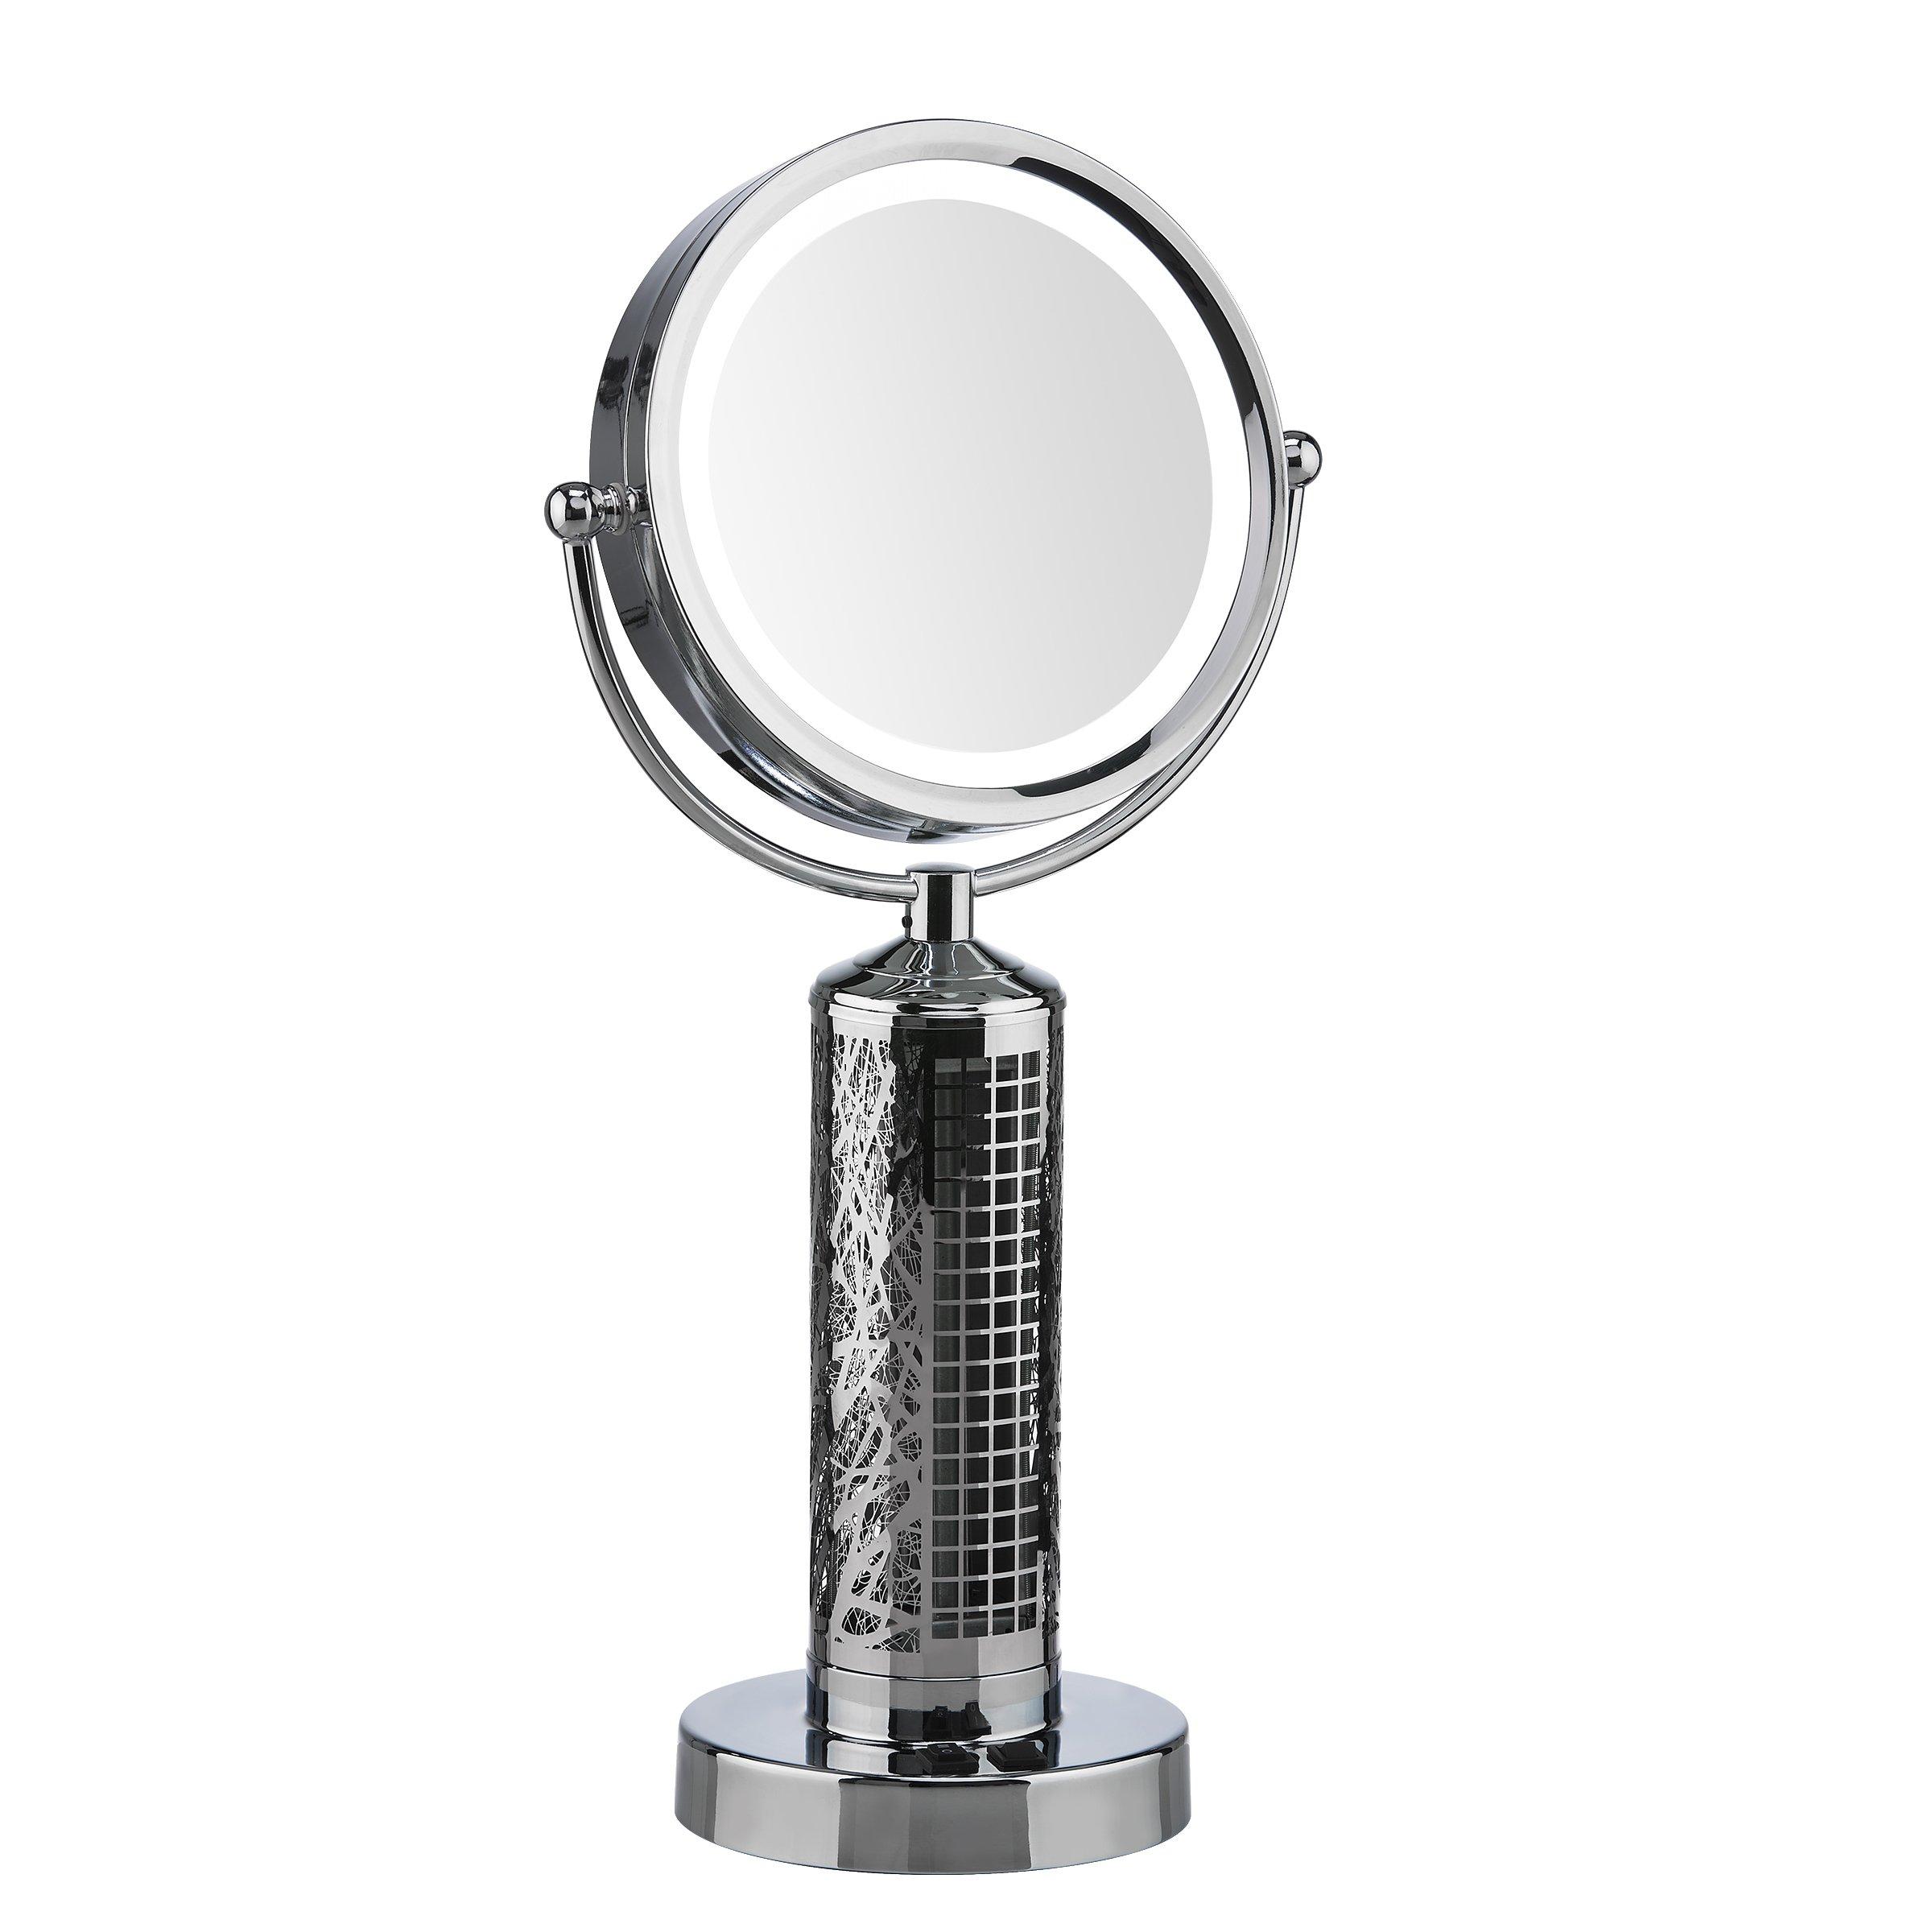 Fanity Two-Sided Magnifying Lighted Makeup Mirror Vanity Mirror with Built-In Two Speed Cooling Fan Air Circulator, 10x Magnification